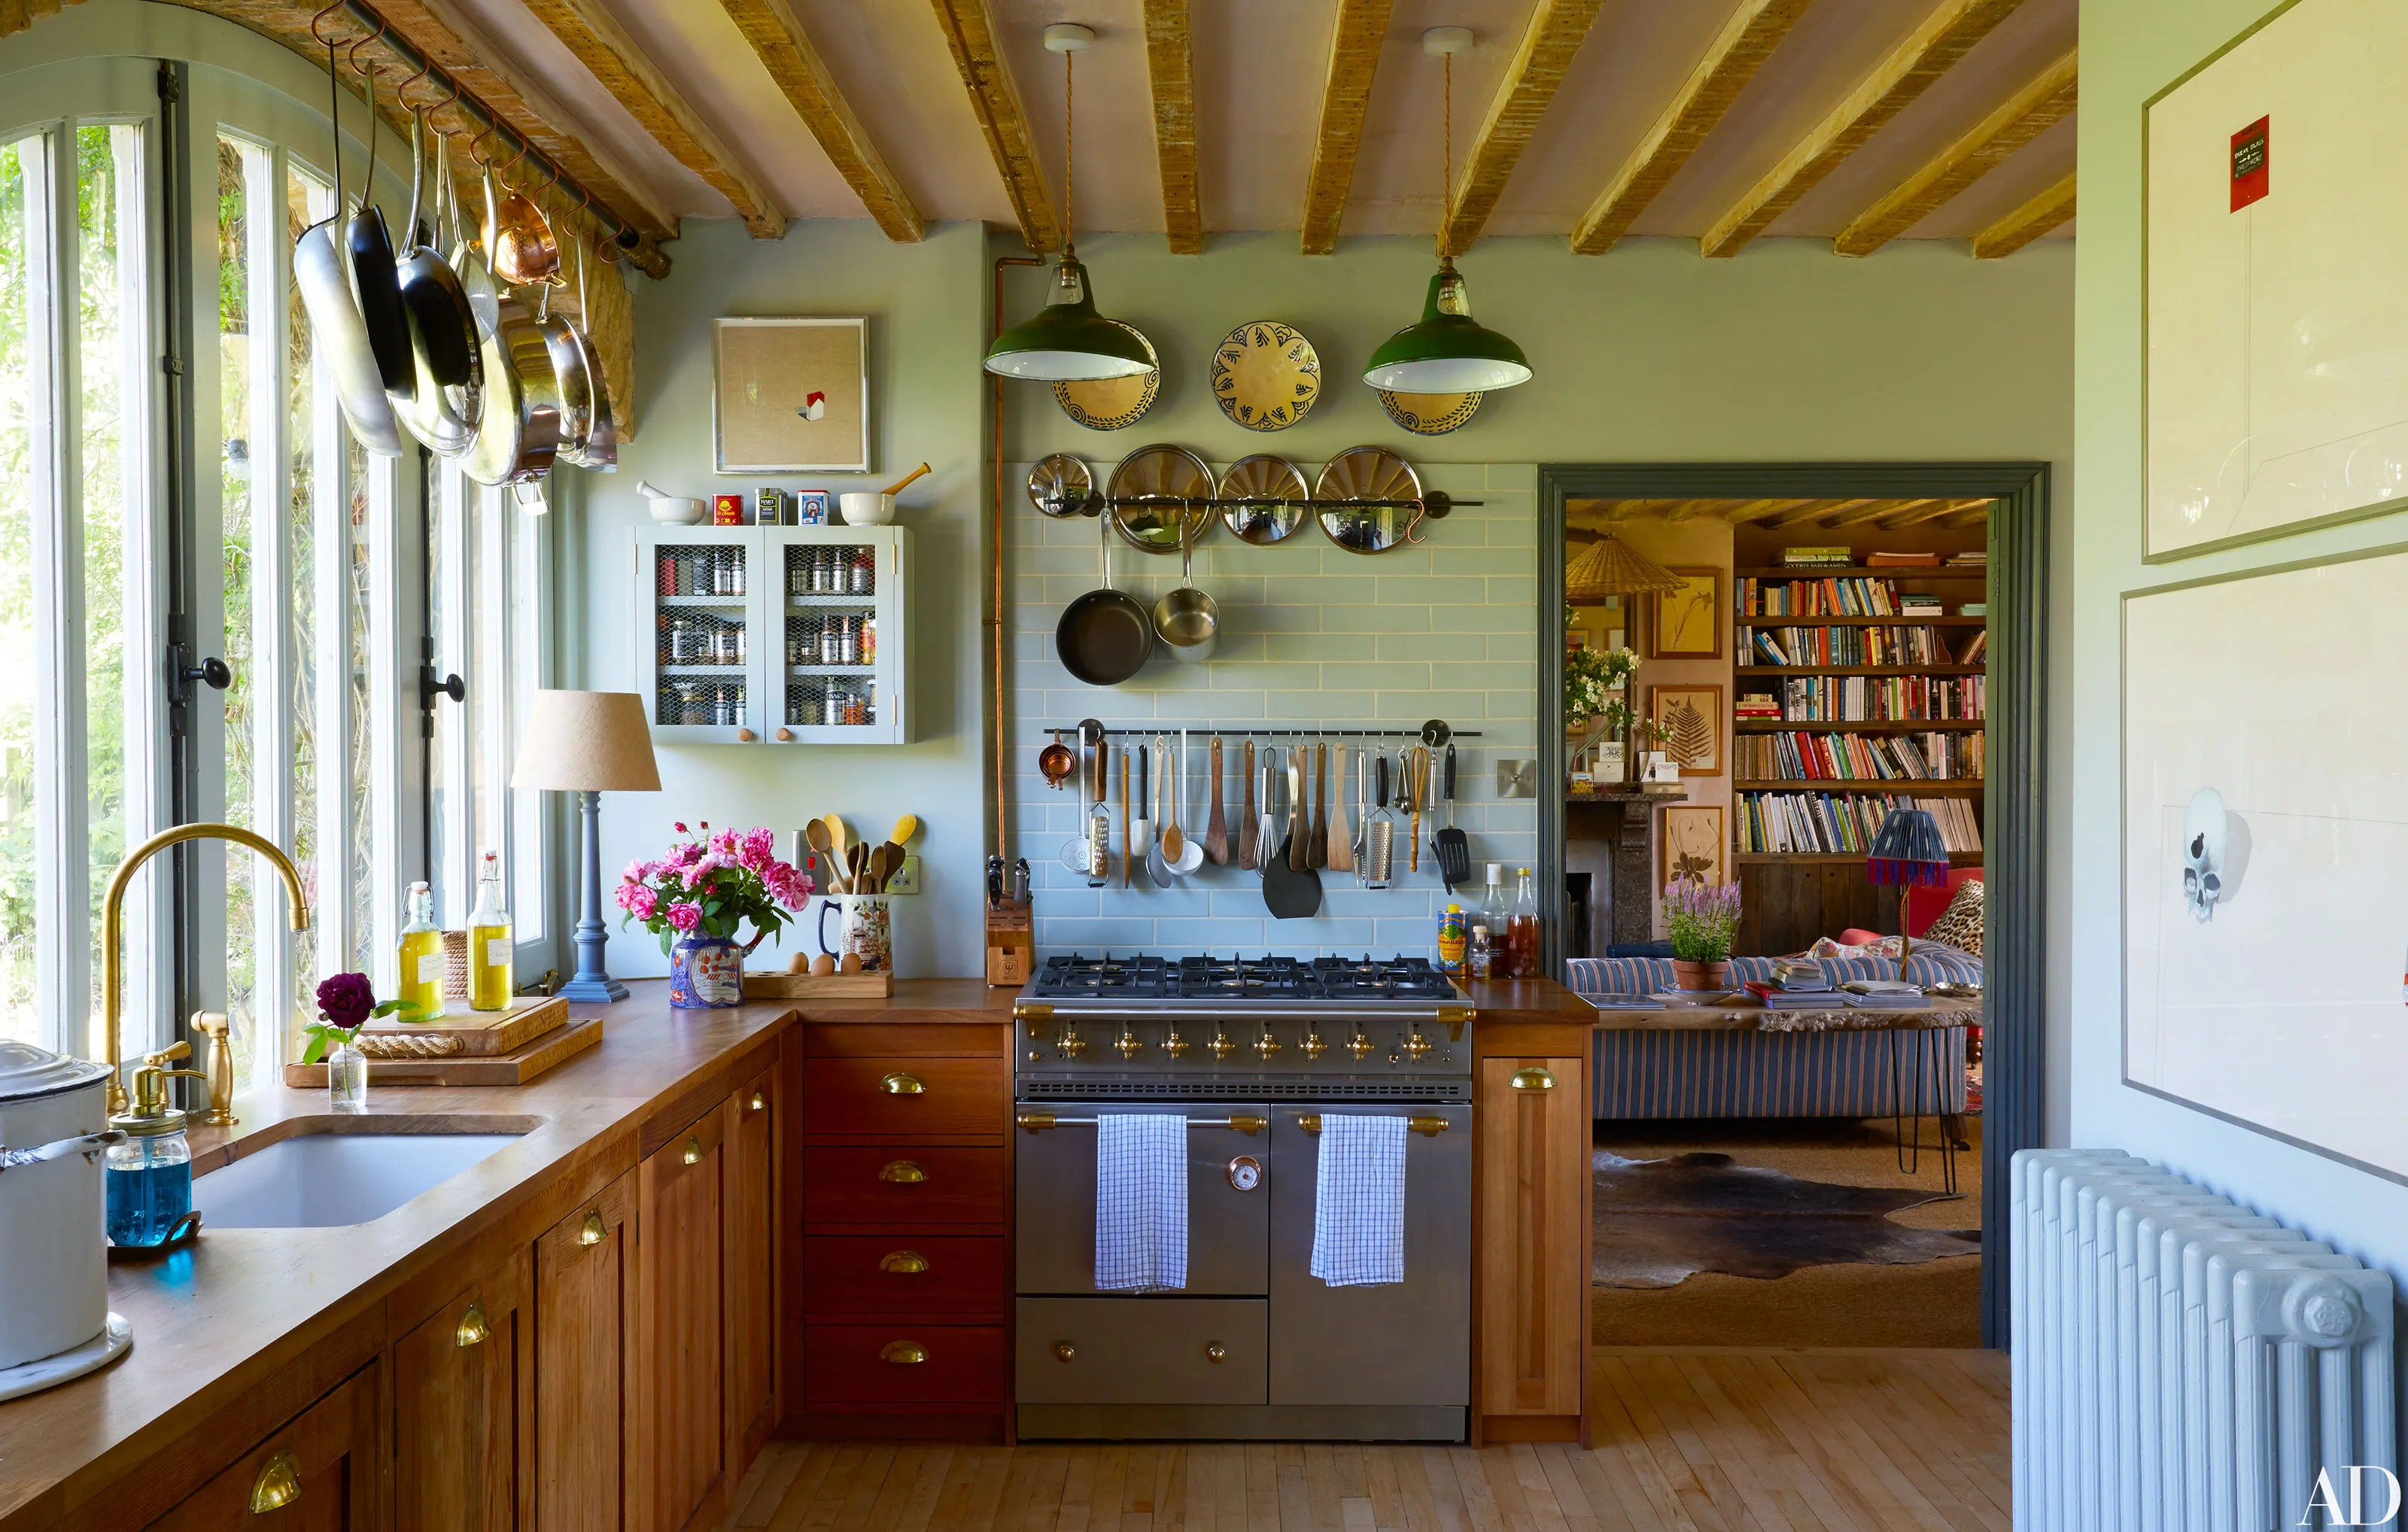 Fall Ceiling Wallpaper Design Amanda Brooks Invites Us Inside Her Dreamy English Country